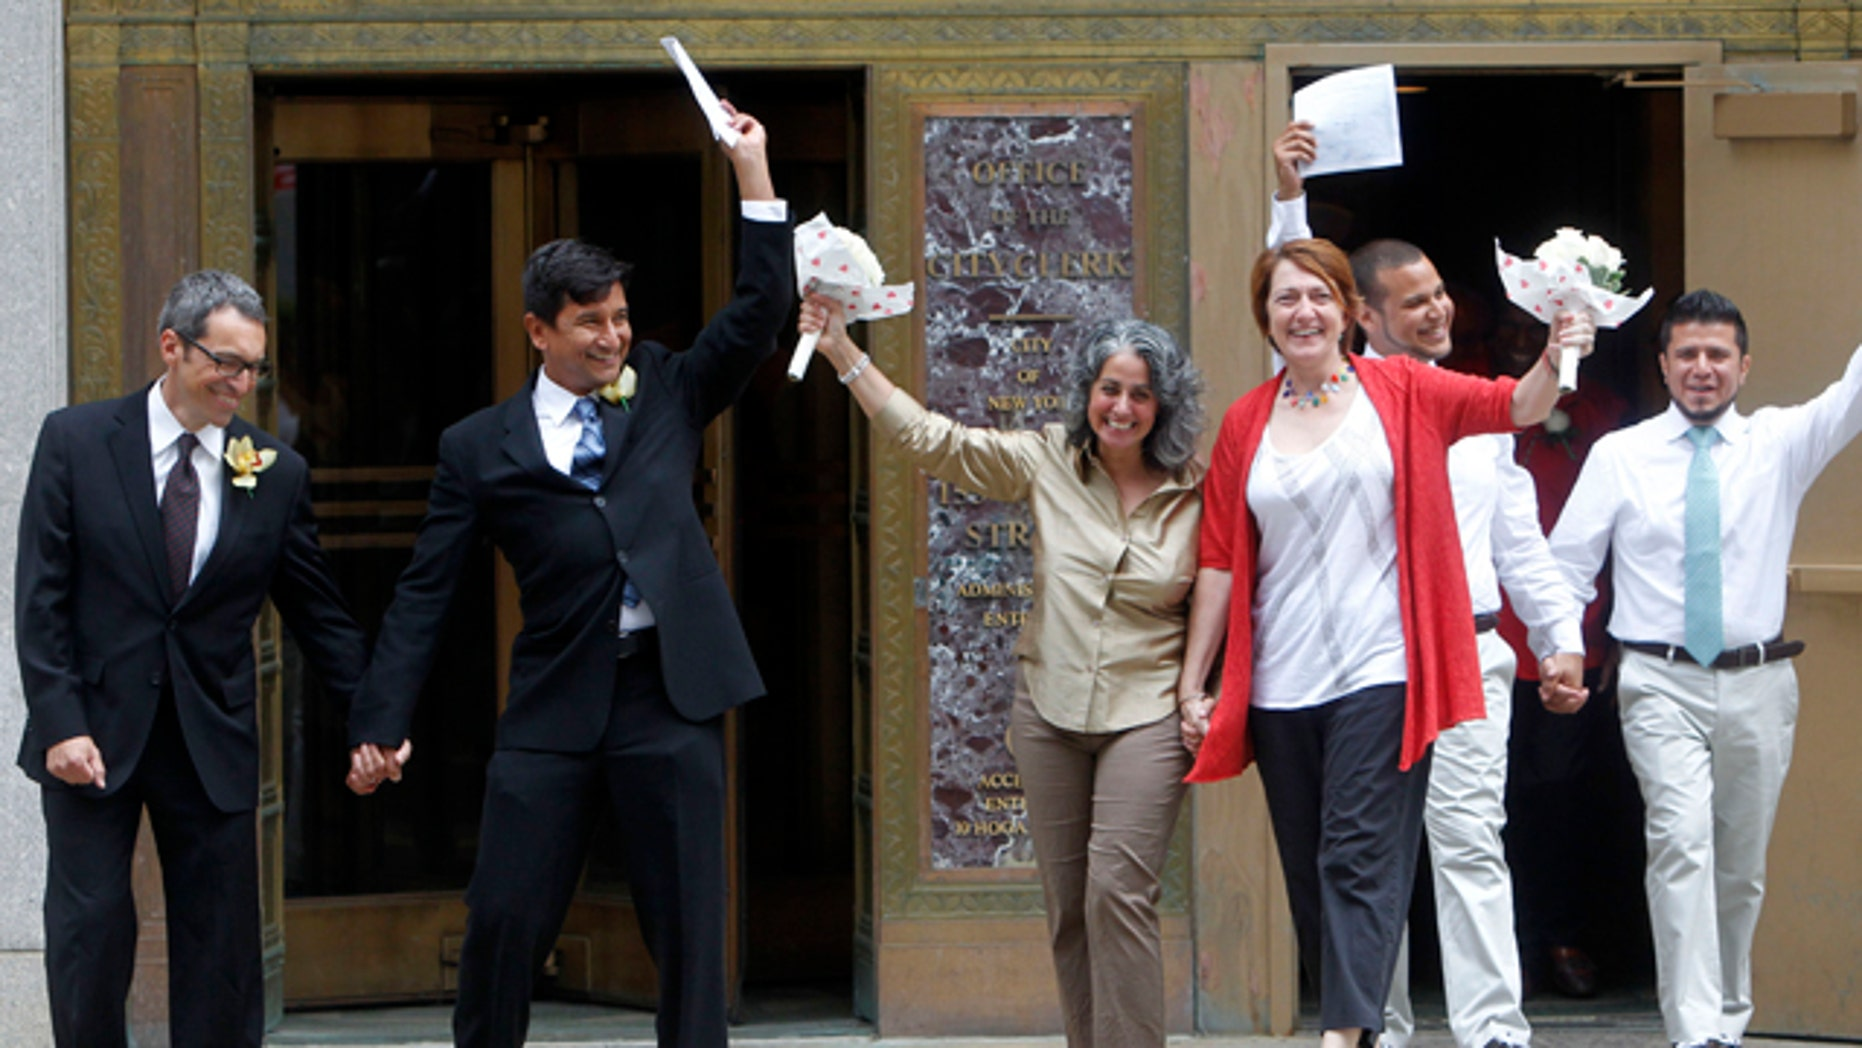 From left, couples Nevin Cohen and Daniel Hernandez, Carol Anastasio and Miriam Brown, all of New York, and Marcos Chaljub and Freddy Zambrano, of Astoria, in the Queens borough of New York, celebrate after getting married at the Manhattan City Clerk's office, Sunday, July 24, 2011 in New York. (AP Photo/Jason DeCrow)